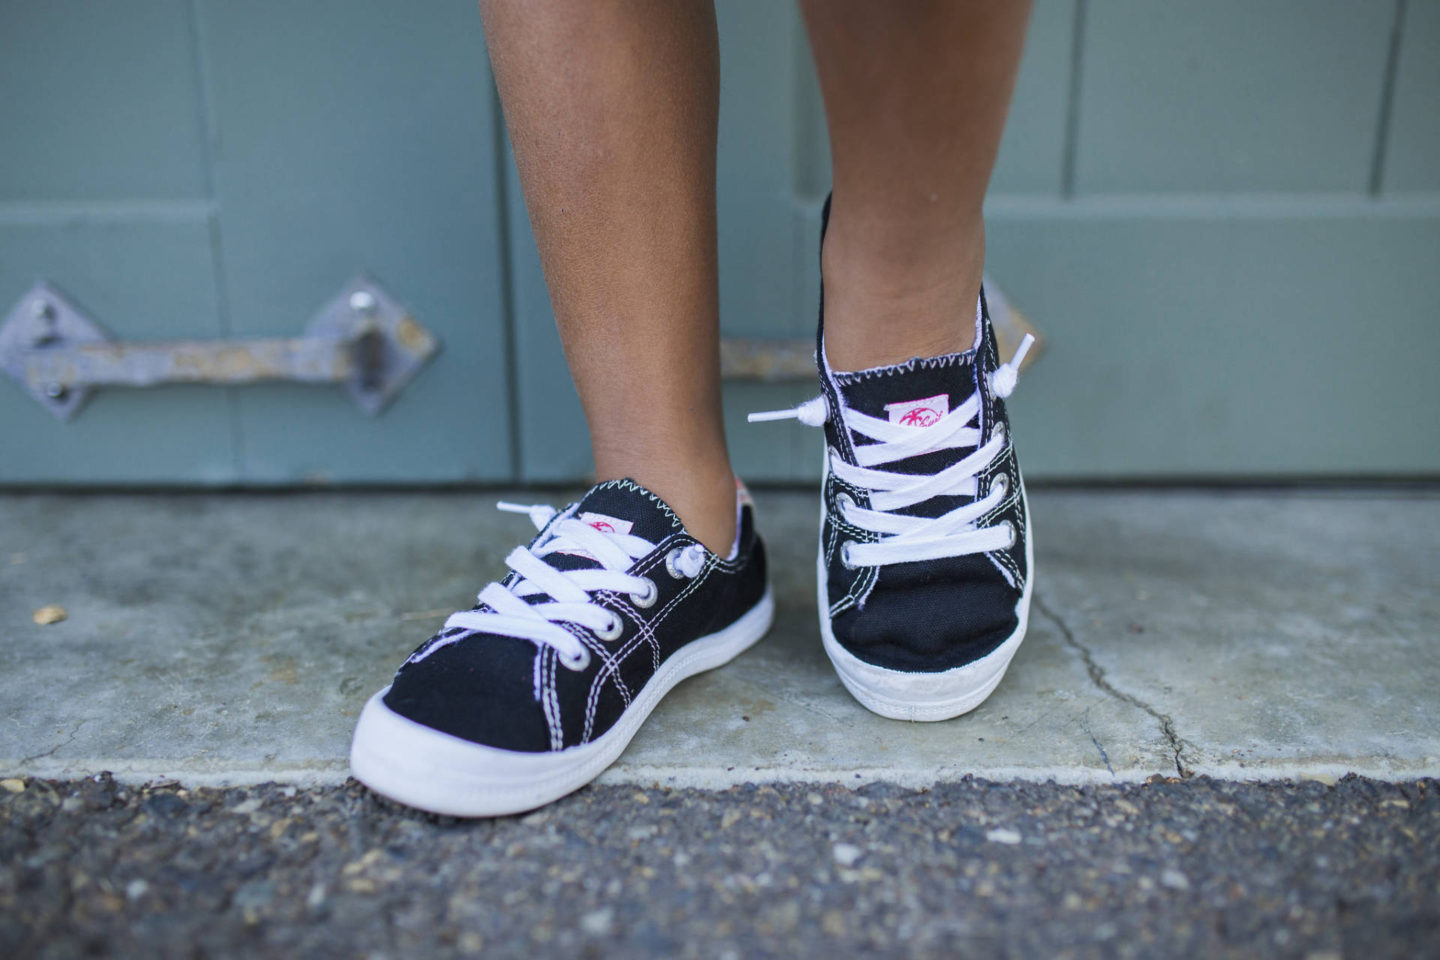 Affordable back to school shoes and accessories with Shoe Carnival! Check out our new spin this year!